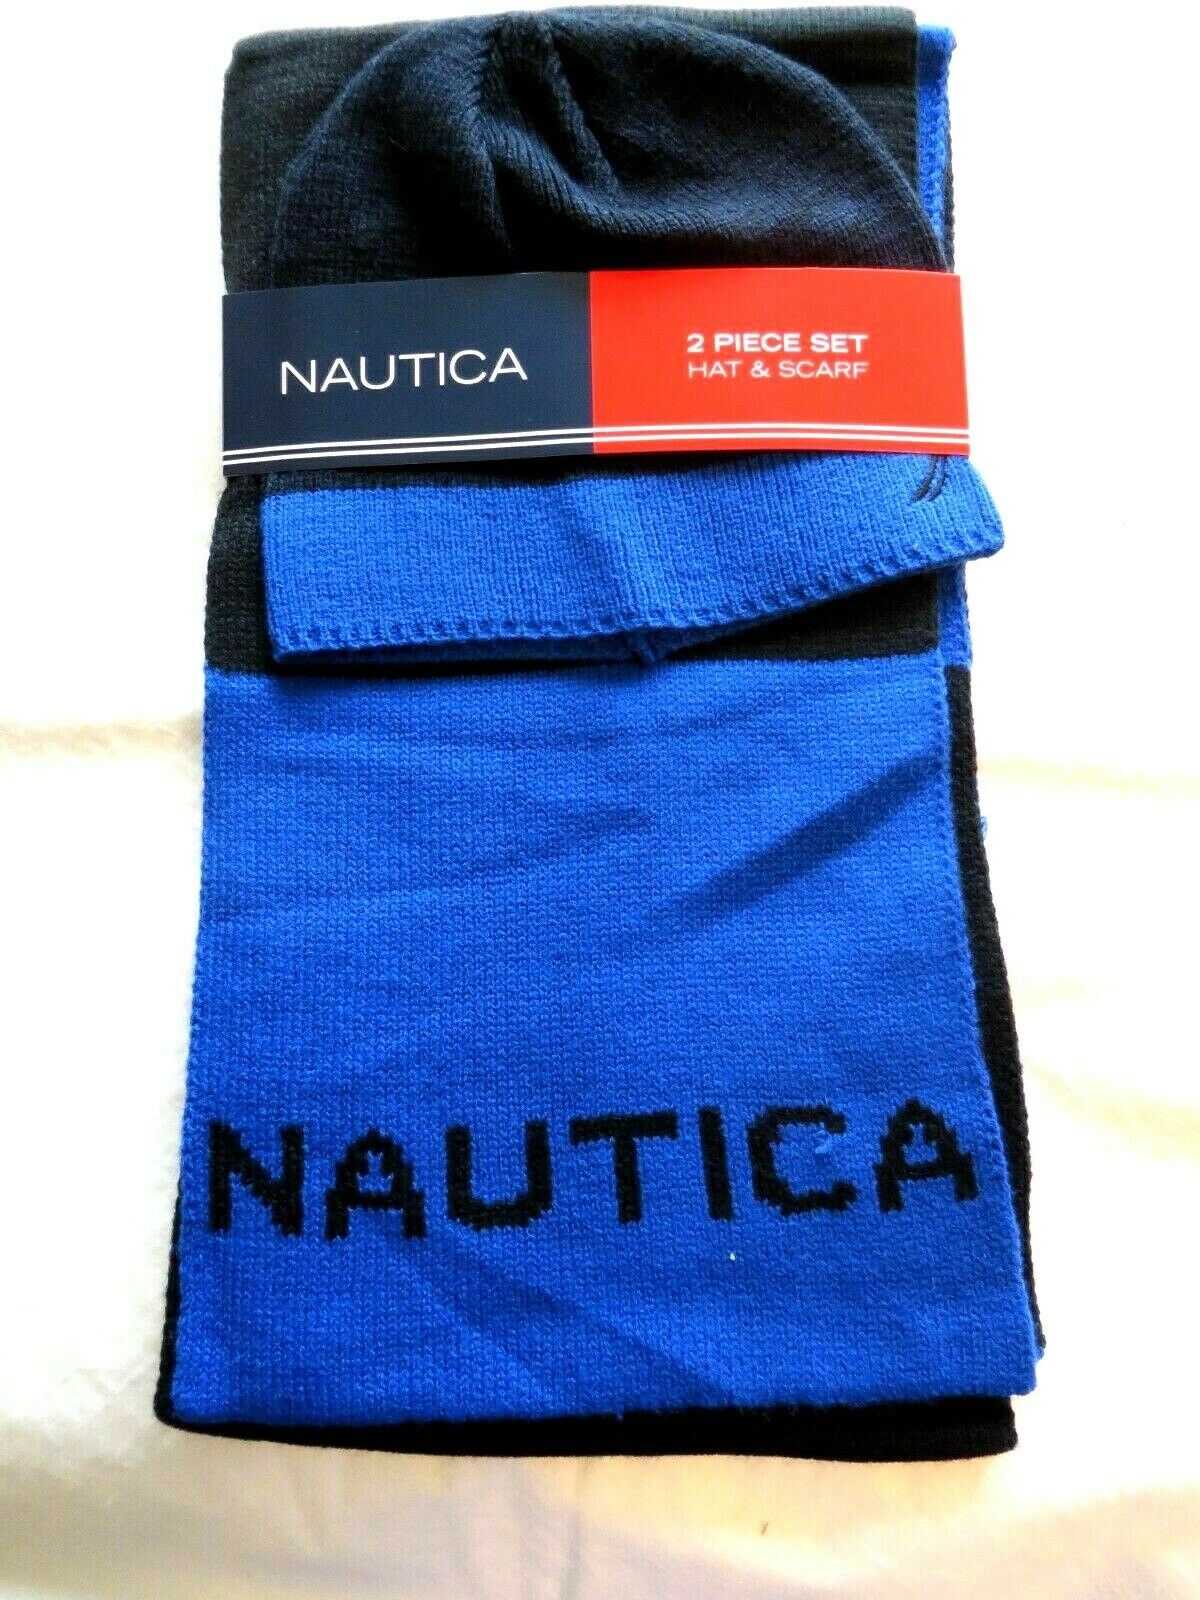 Nautica 2 Piece Hat & Scarf Set Black and Blue New with Tag #11317